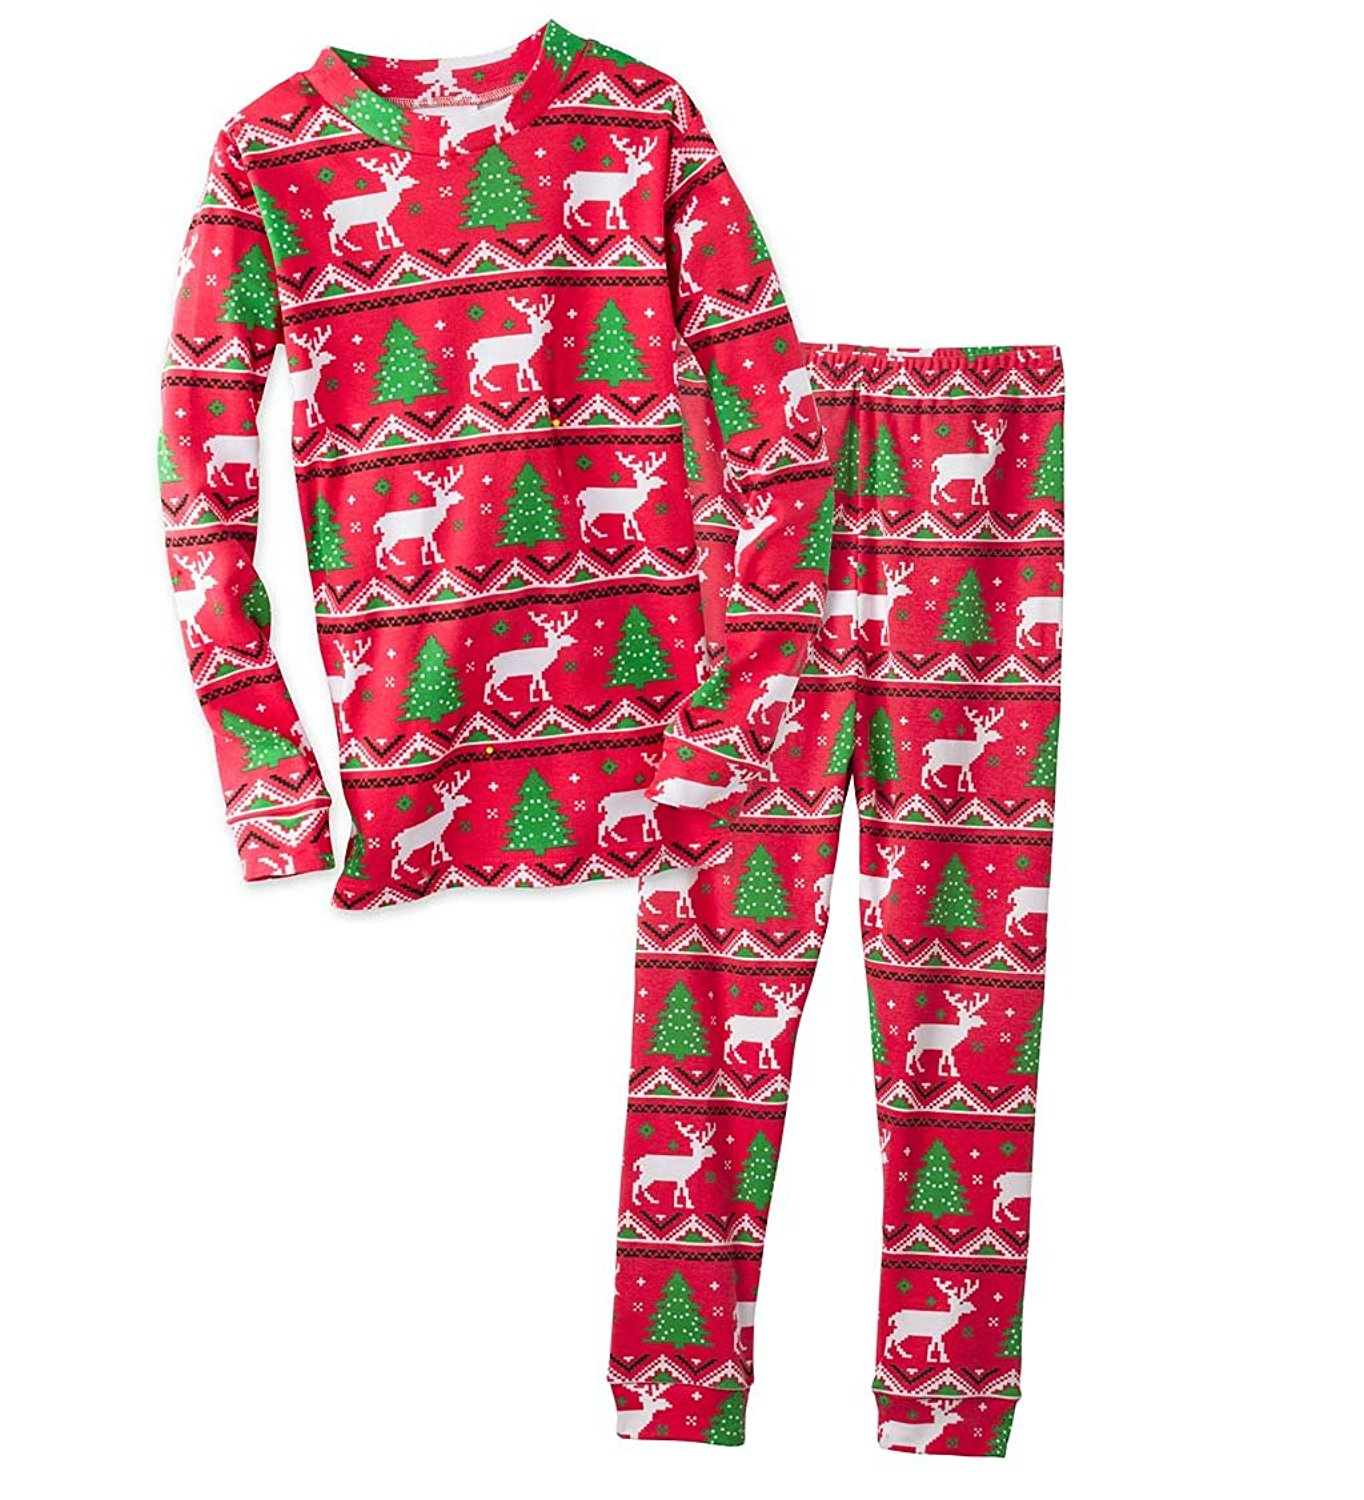 0ff1e48a5e Get Quotations · Unisex Child Christmas Holiday Print Pajamas Set 100%  Cotton Sleepware Boys Girls